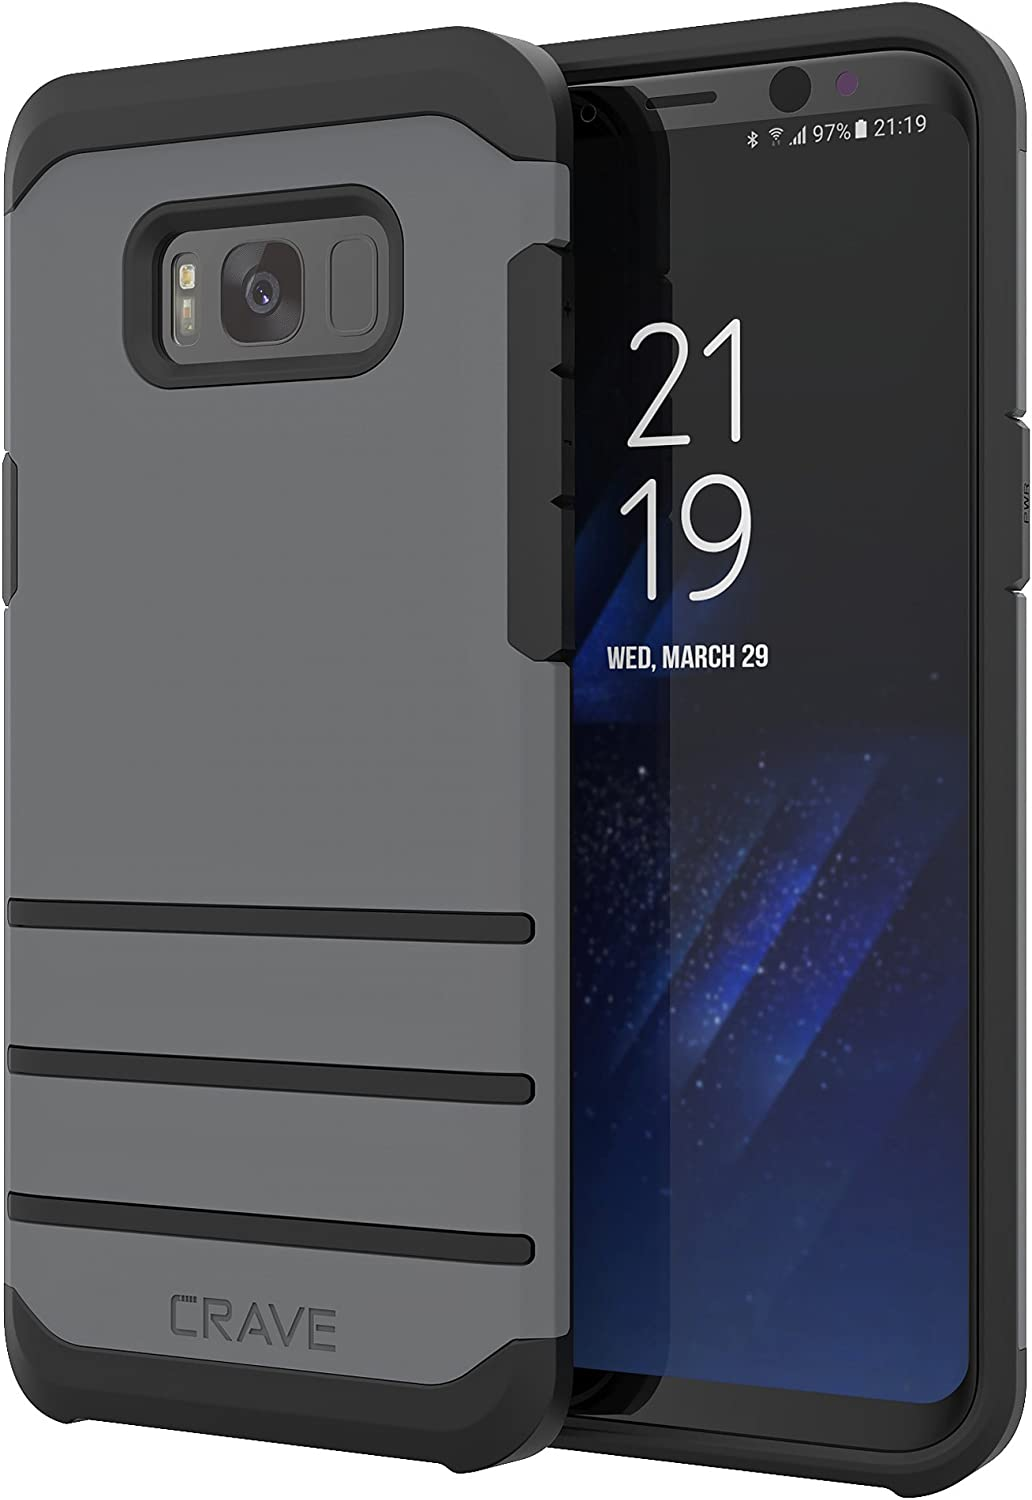 Crave S8 Plus Case, Strong Guard Protection Series Case for Samsung Galaxy S8 Plus- Slate